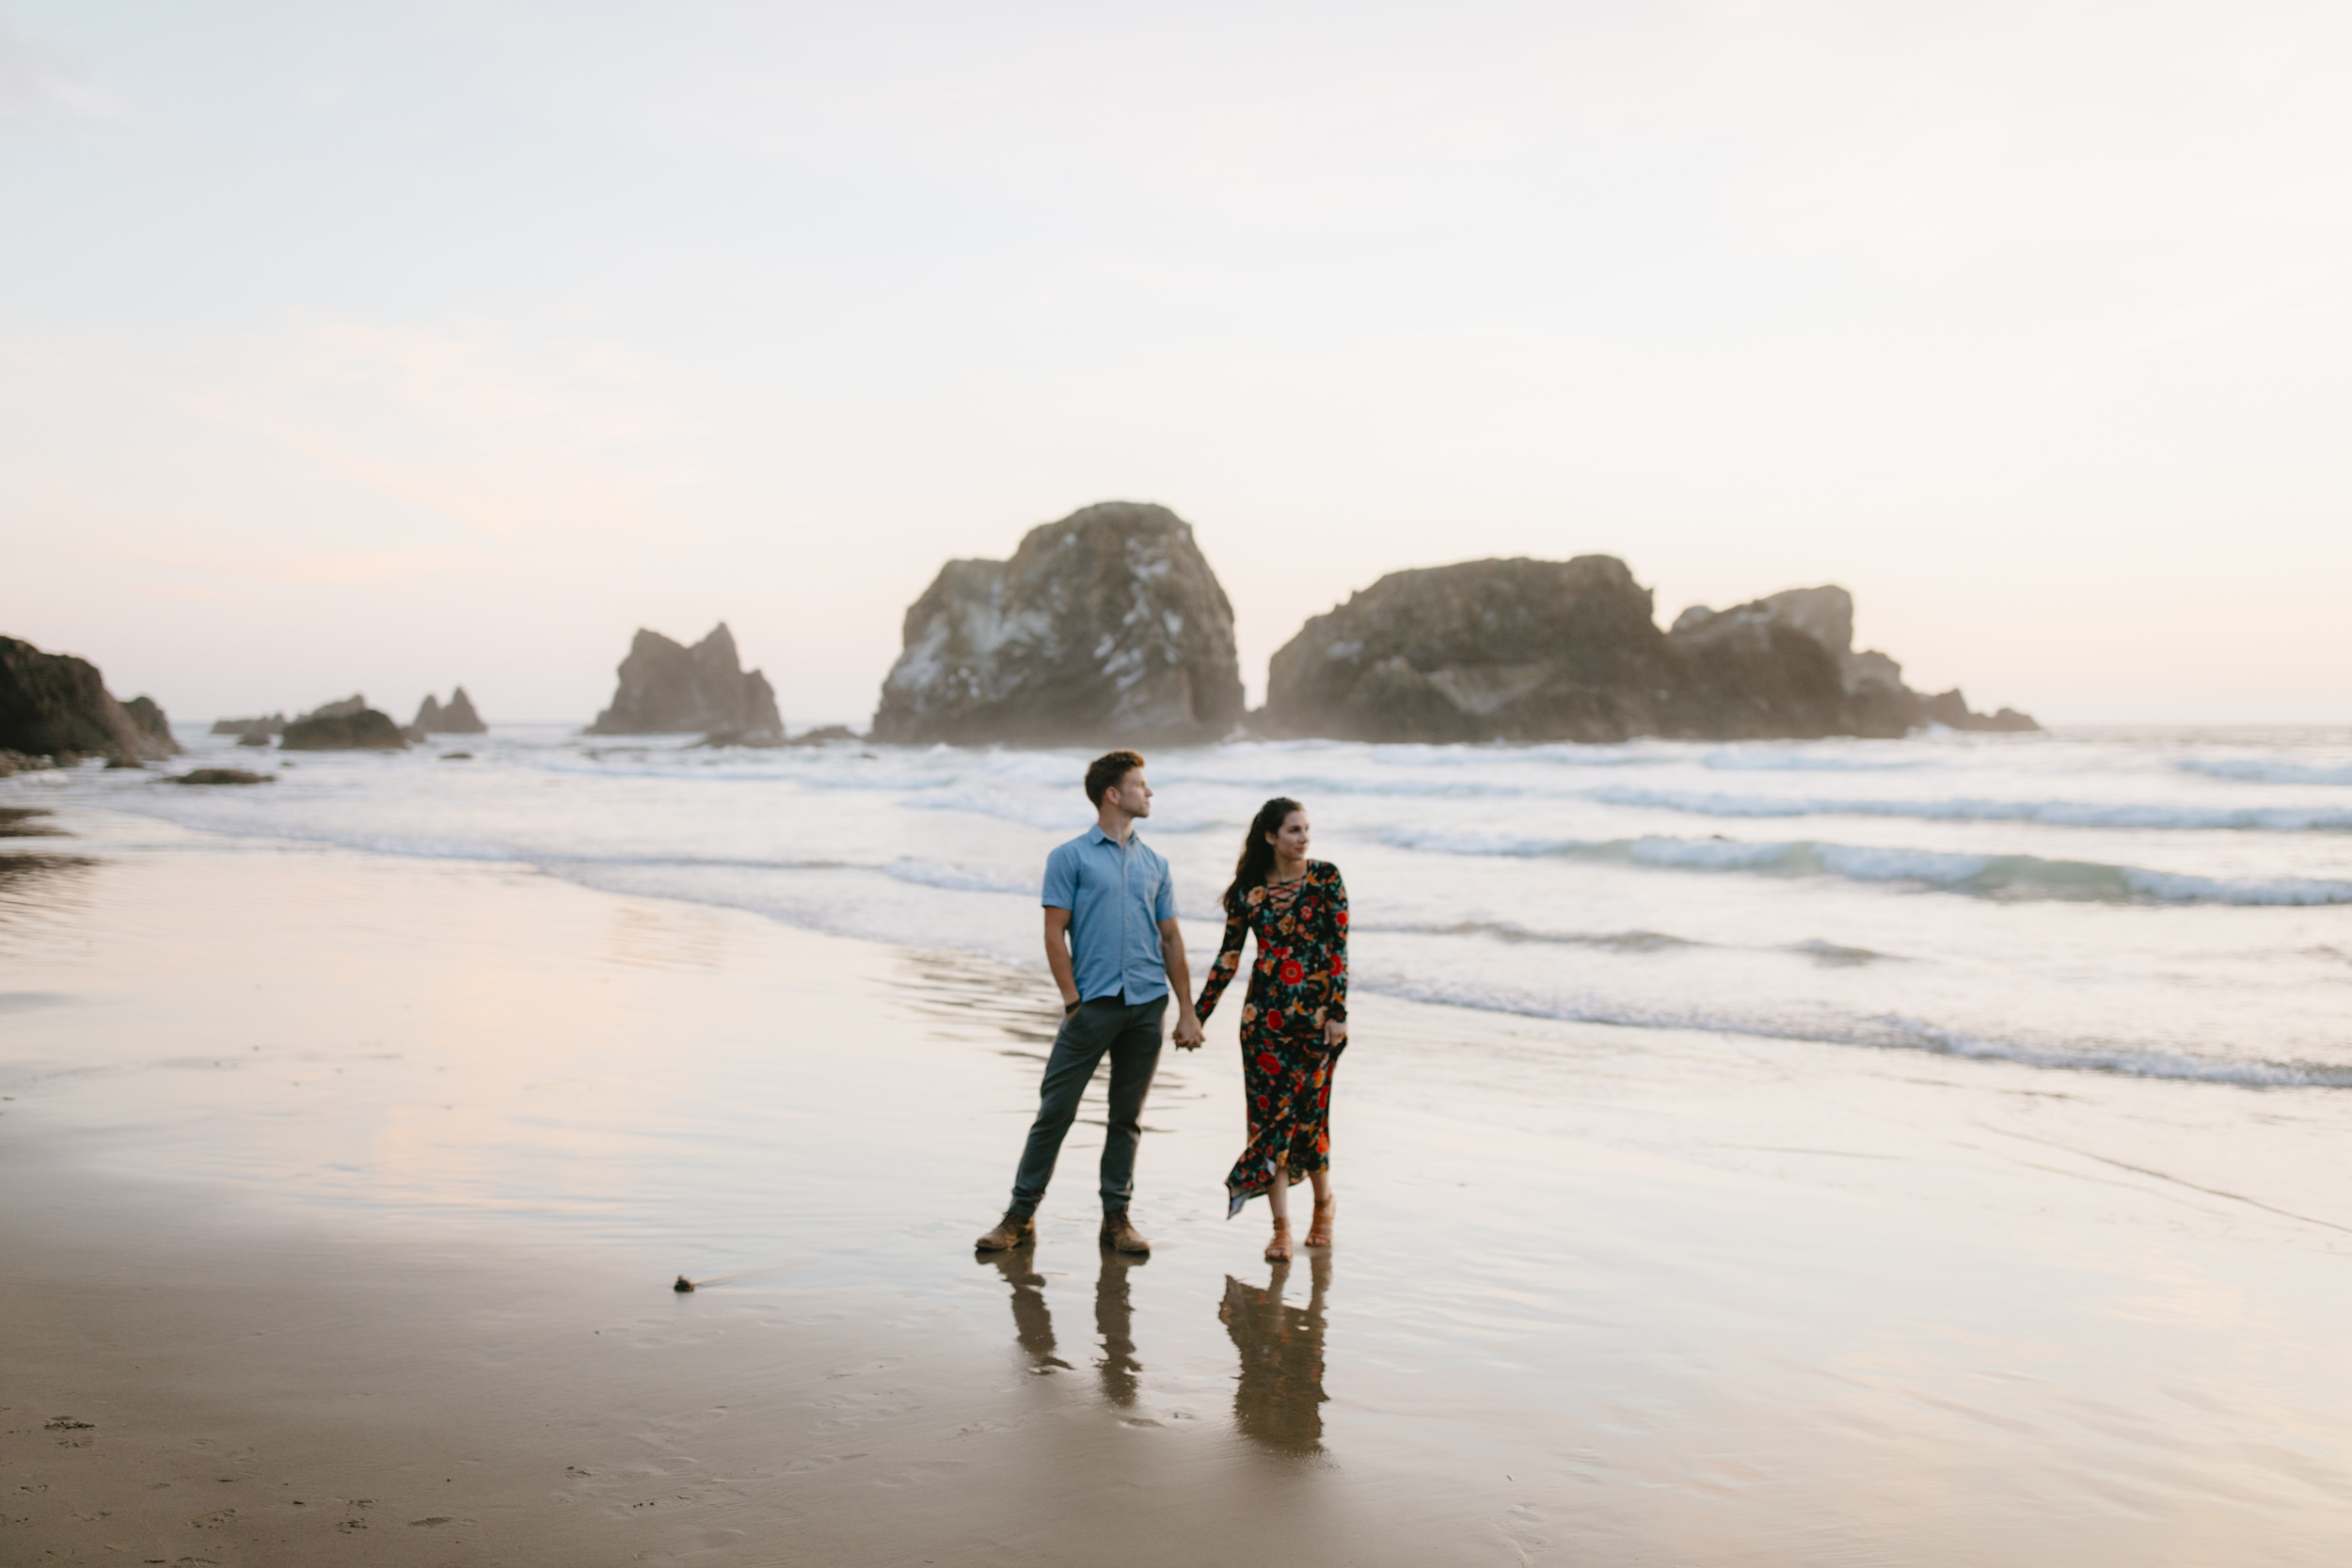 Cannon-Beach-Adventure-Engagement-Photography-Oregon-Destination-Elopement-Photographer177.JPG